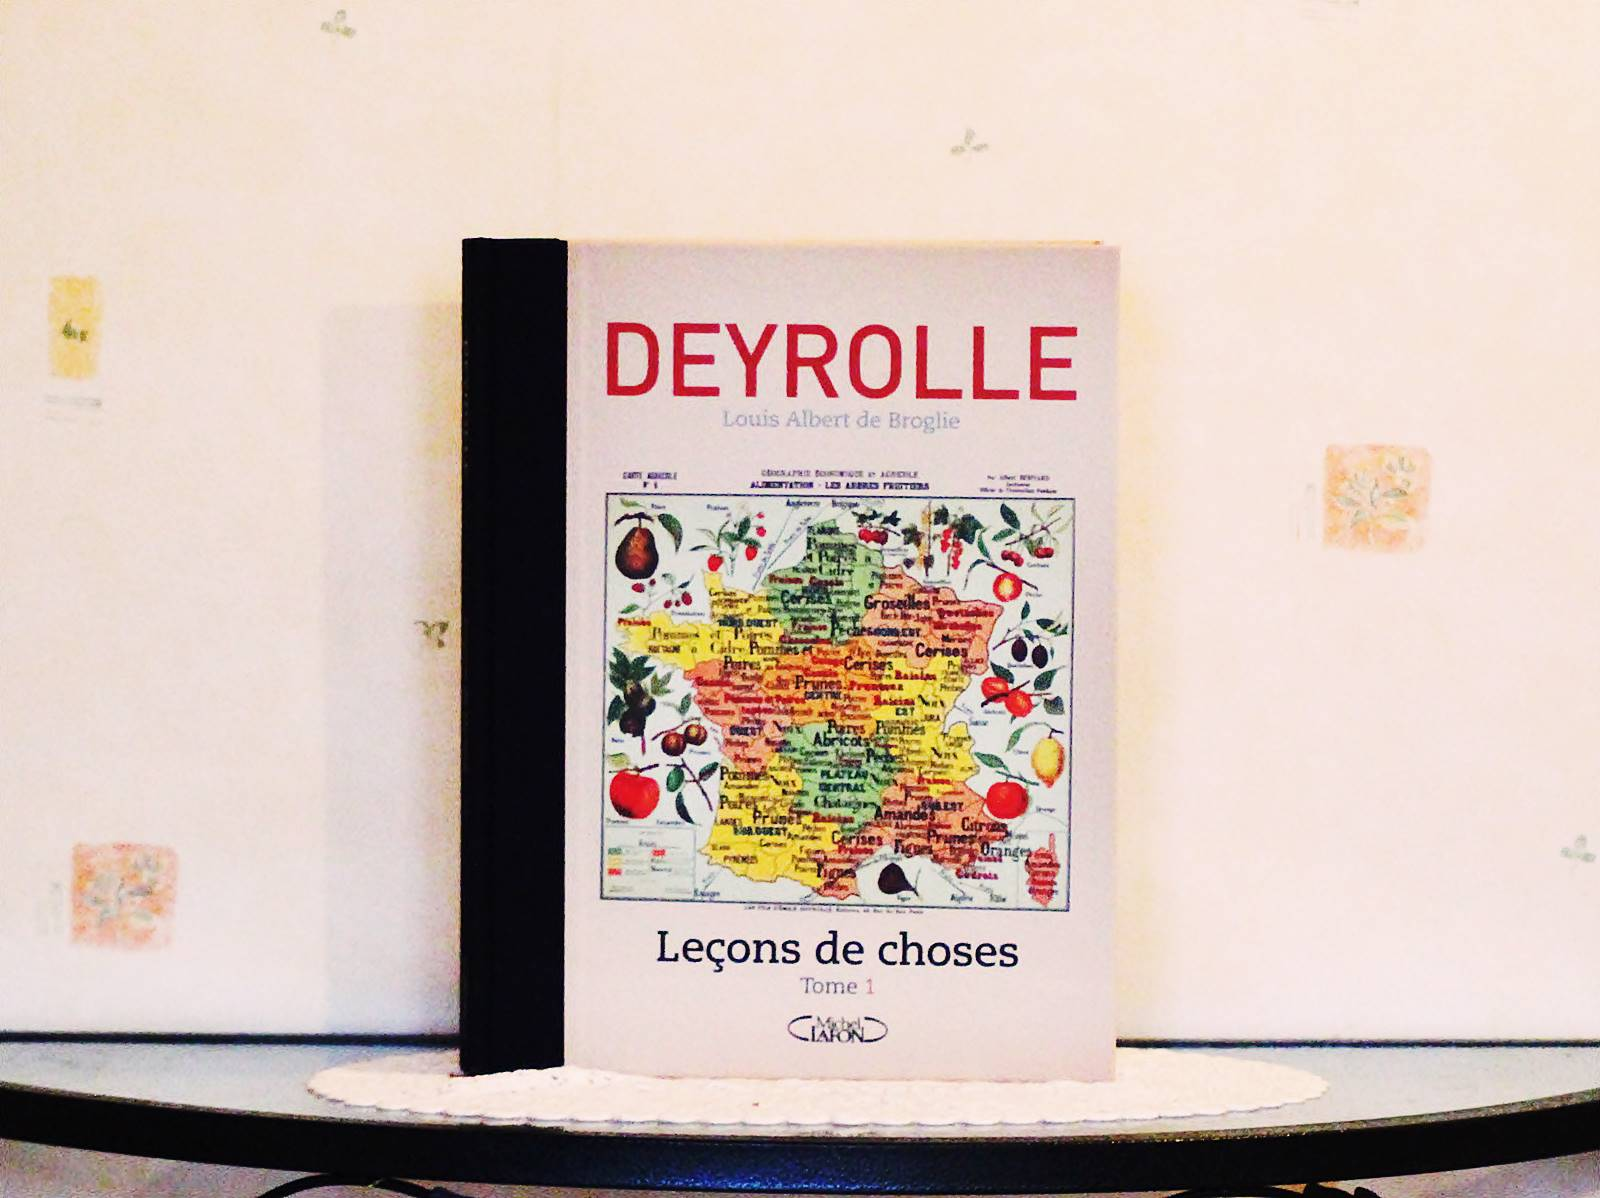 Deyrolle lecon de choses tome 1